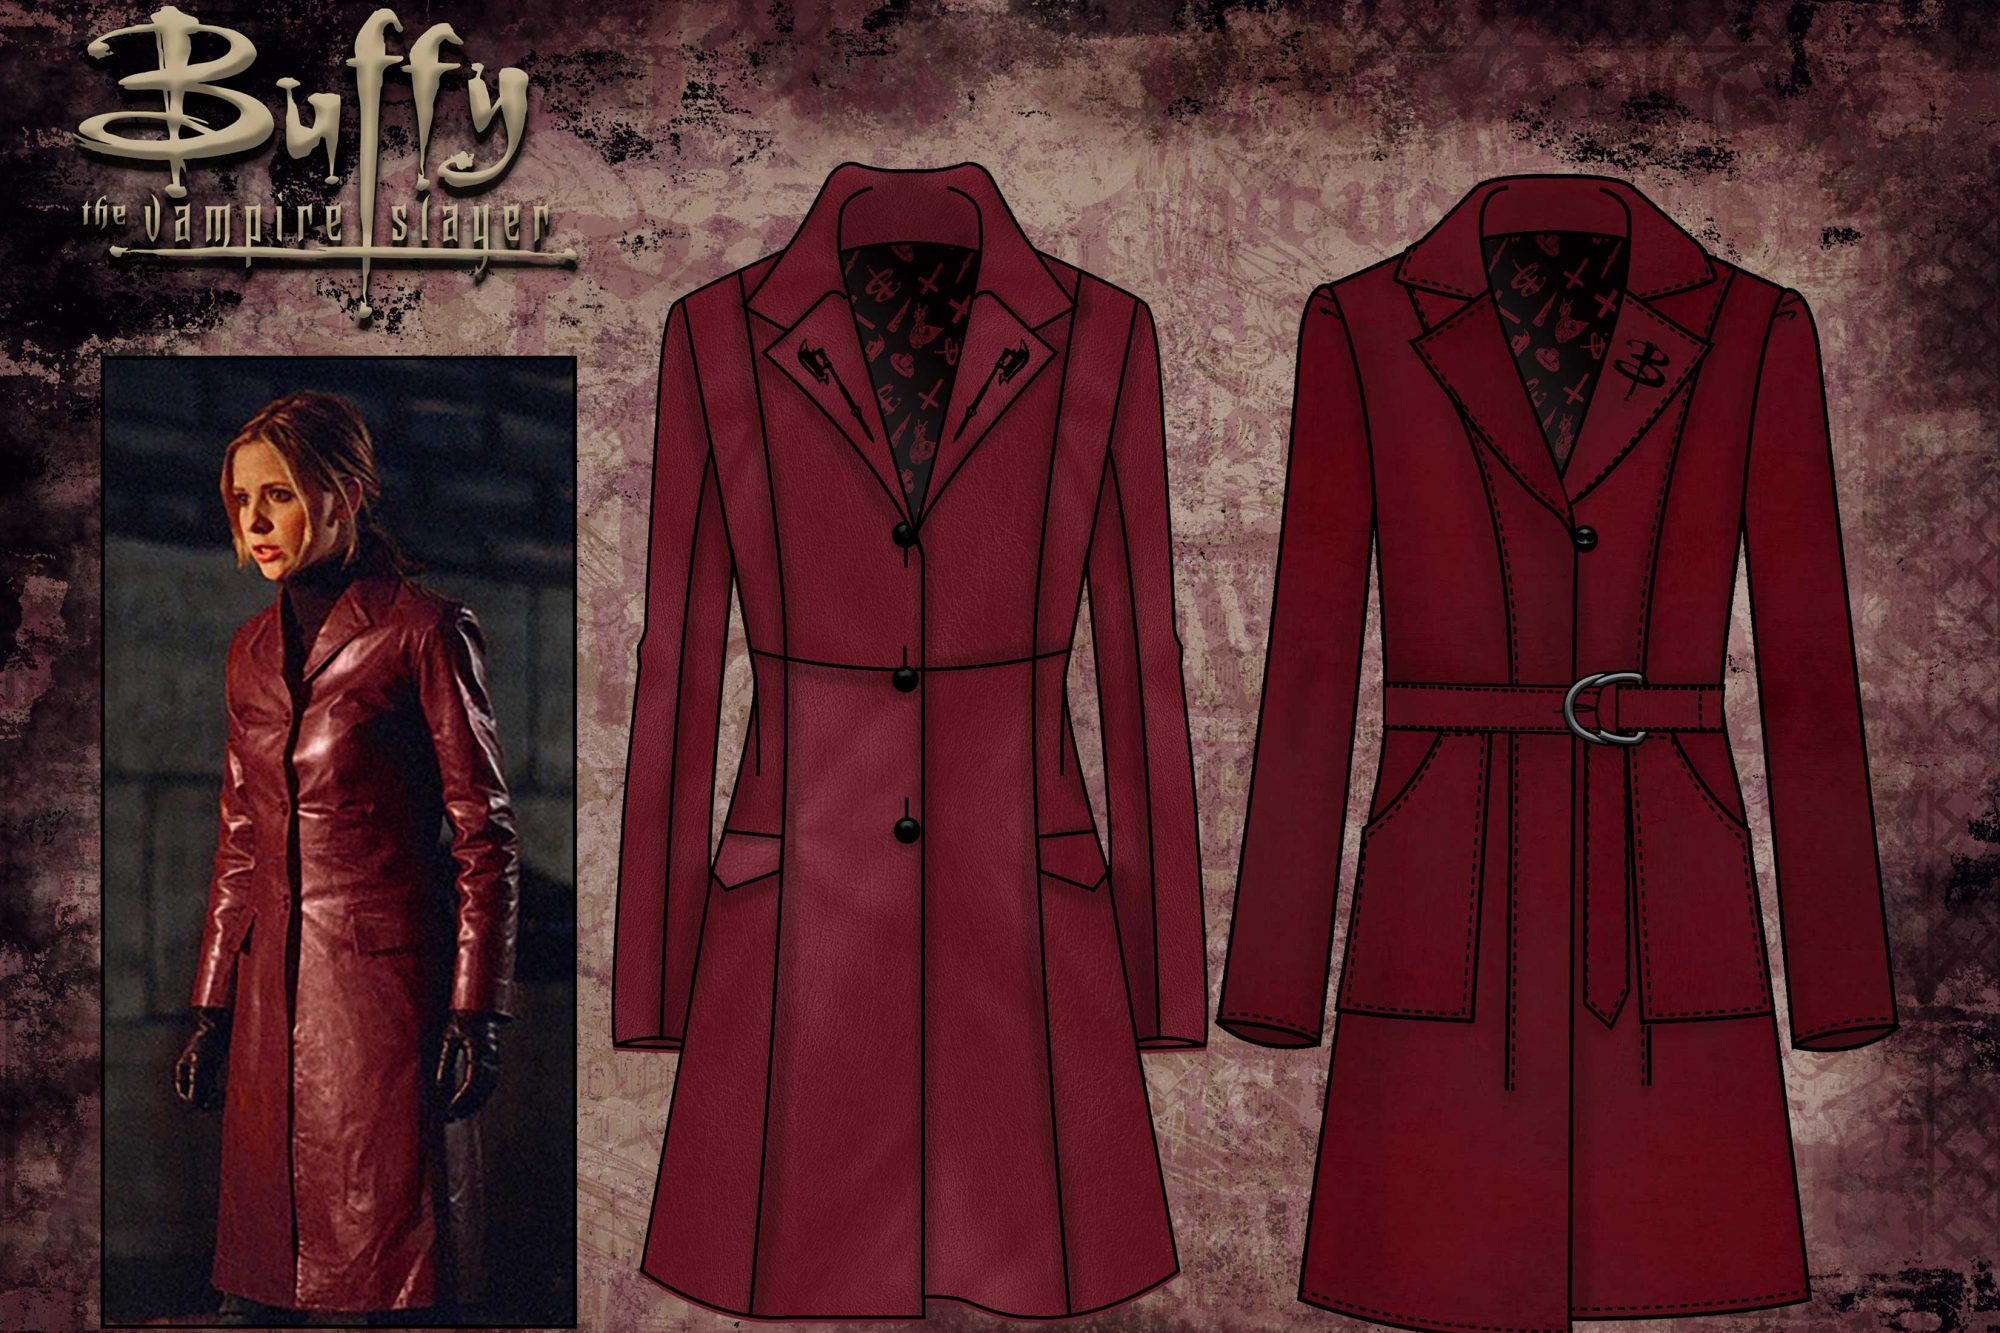 acdc-btvs-trench-coats-2